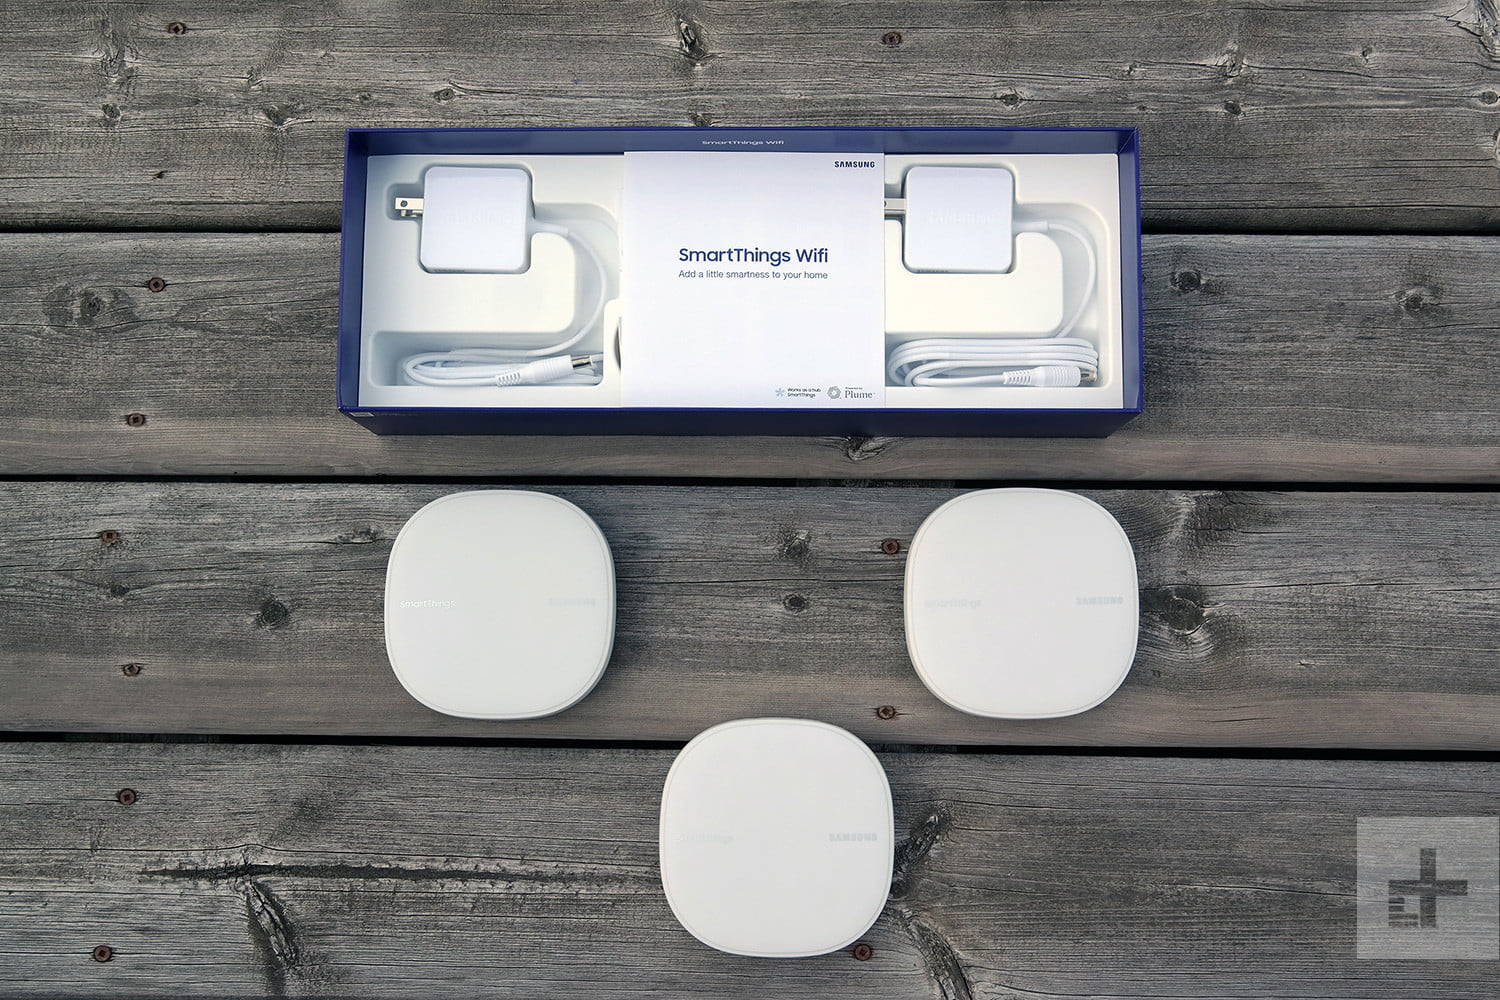 Samsung Smartthings Wi Fi Review Digital Trends Wireless Home Network Diagram Simple W Box